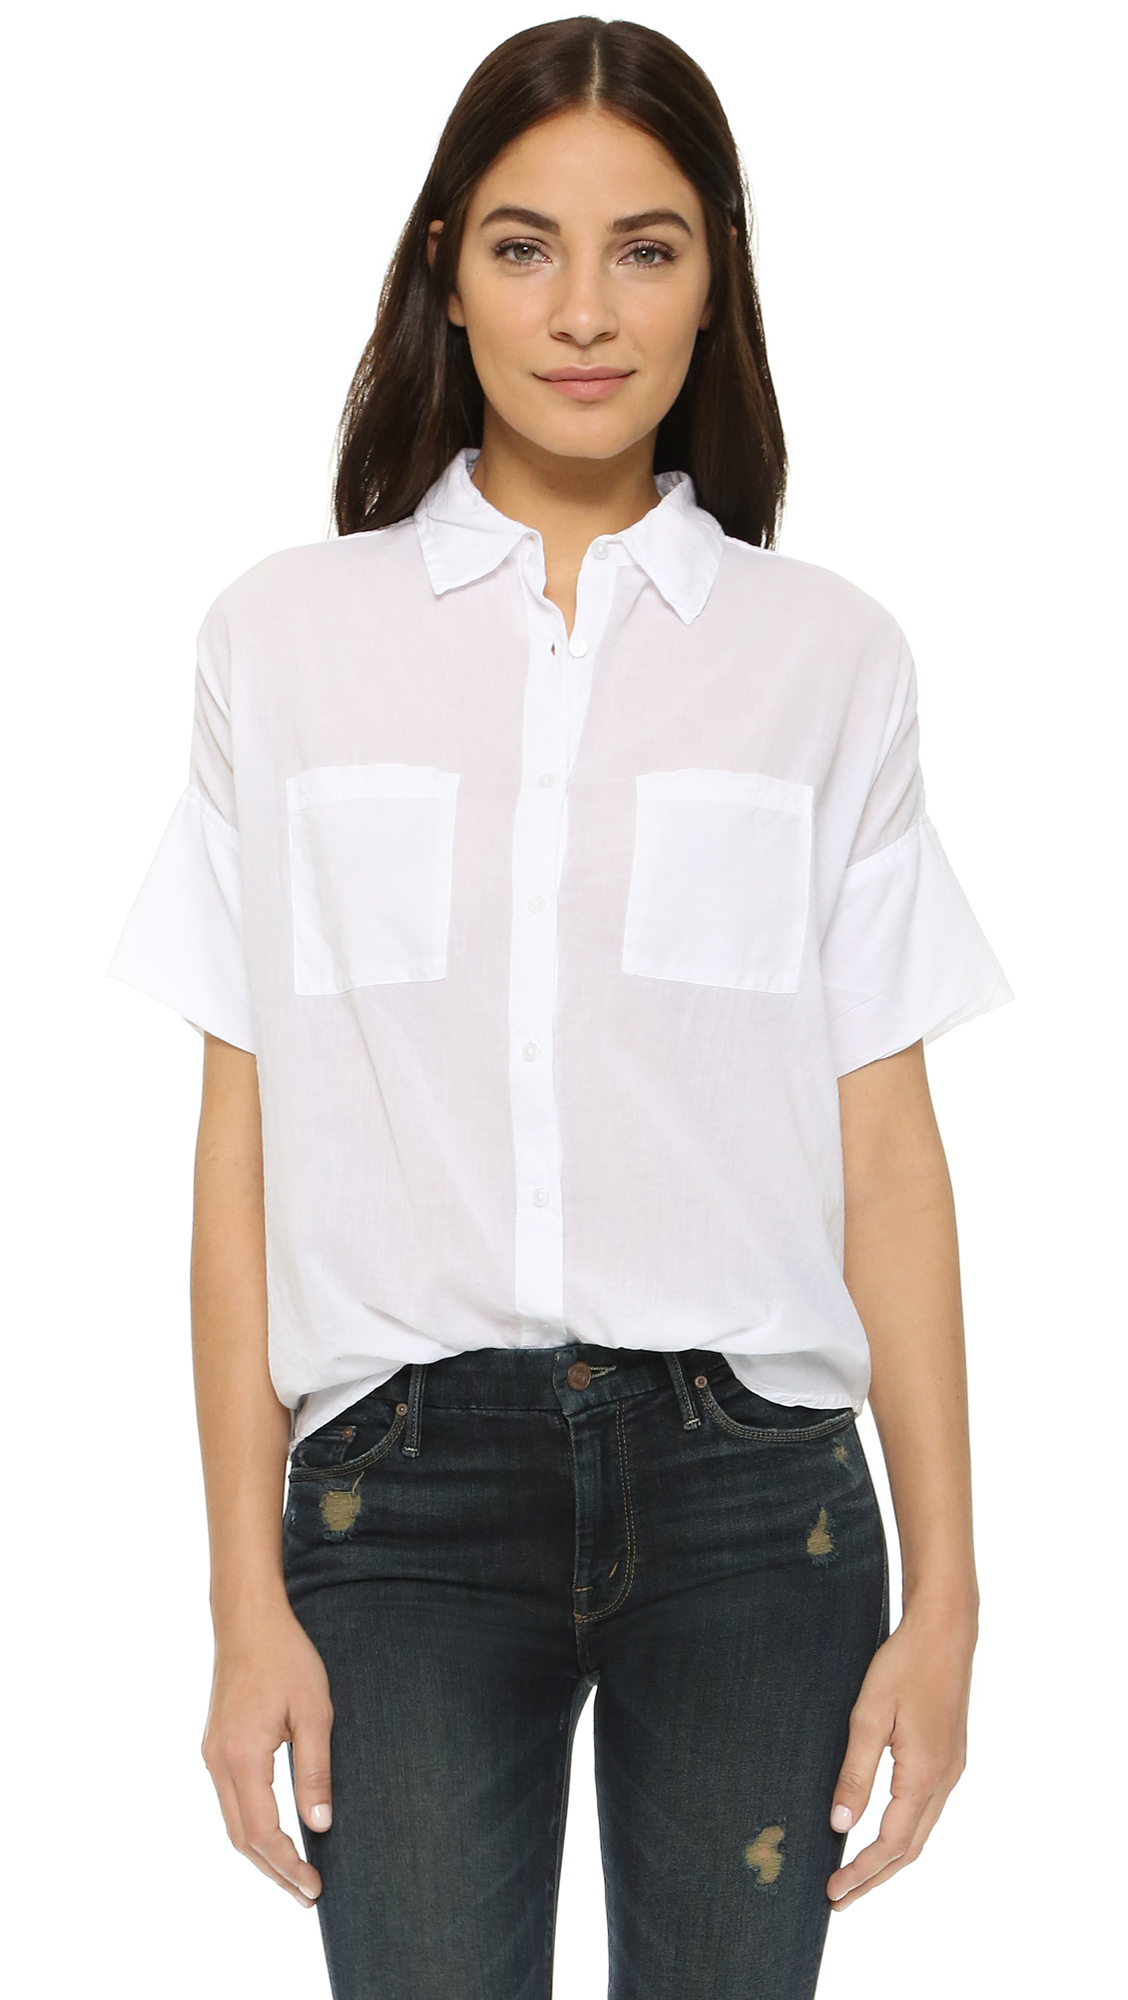 Sundry Short Sleeve Blouse in White | Lyst